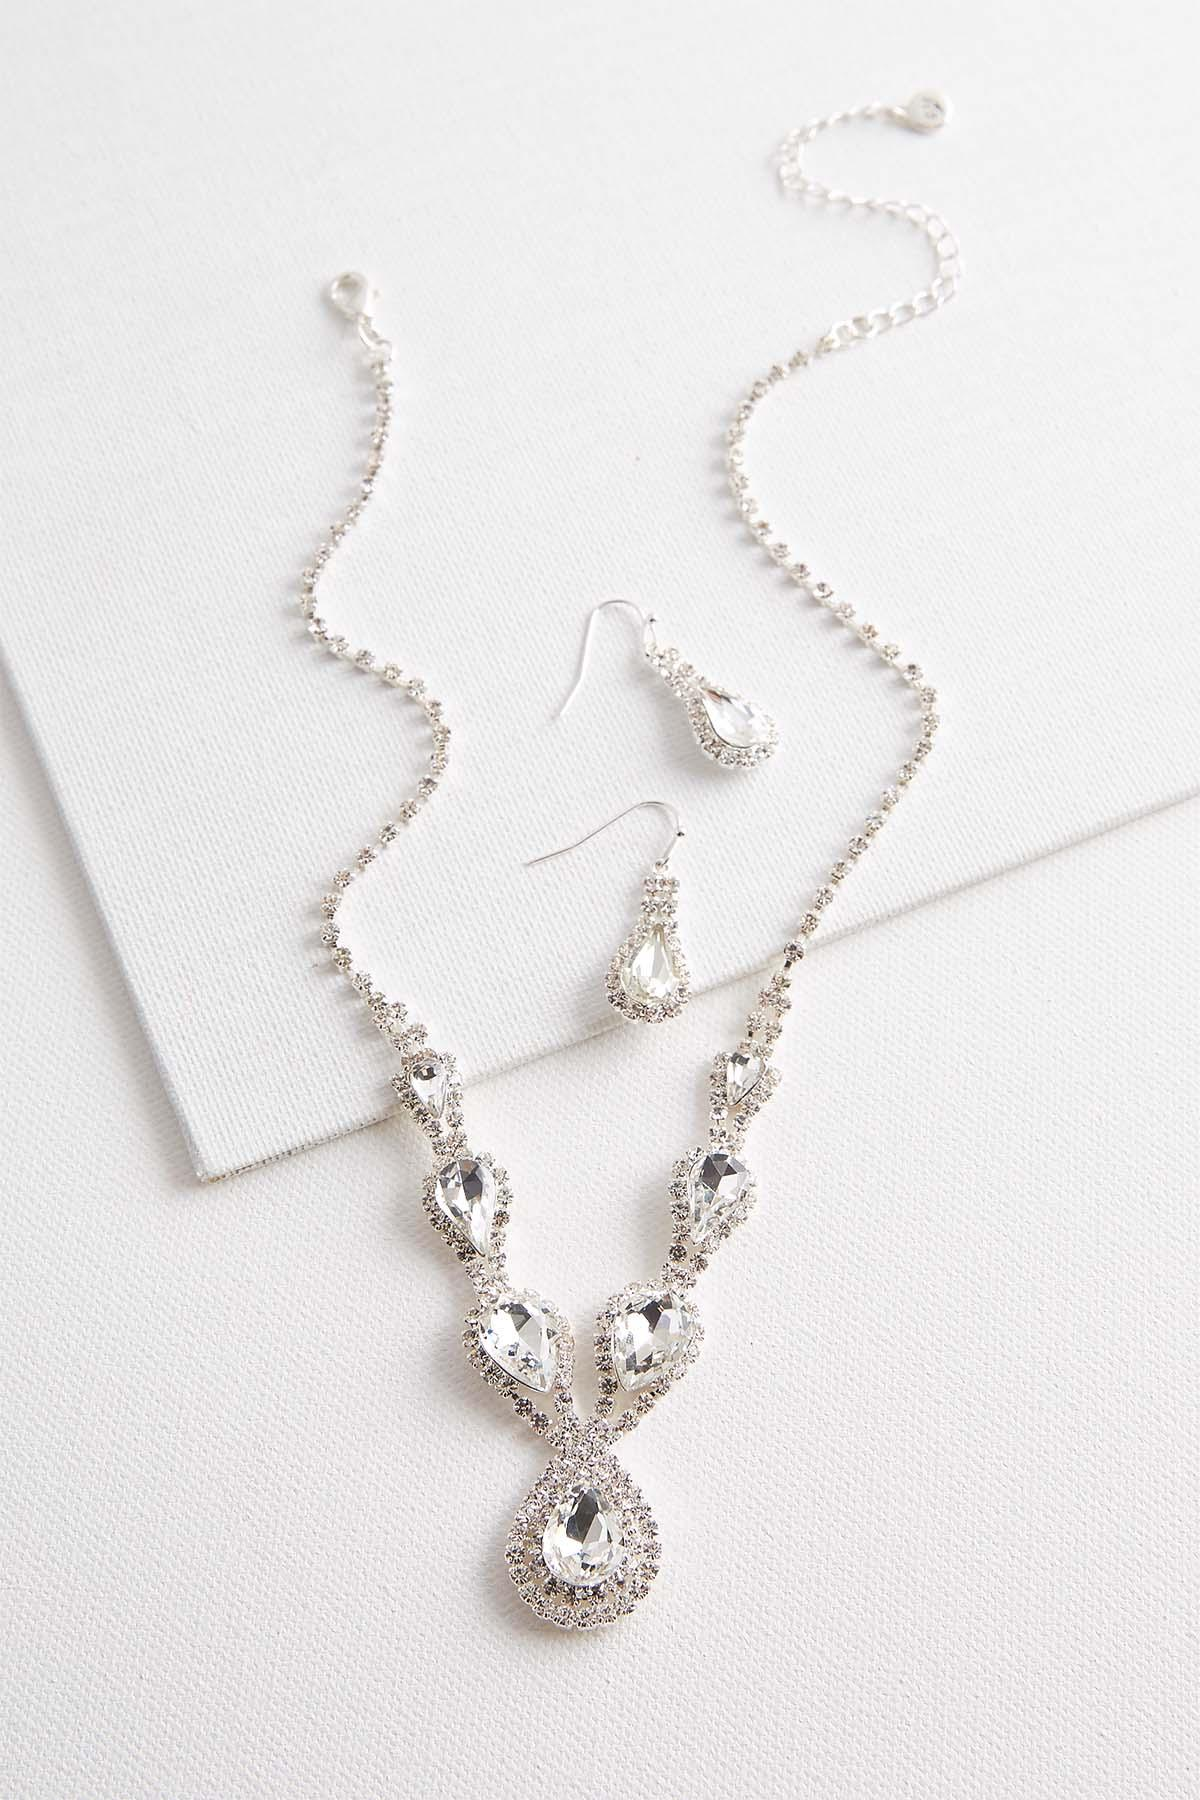 Tear Shaped Rhinestone Necklace Set